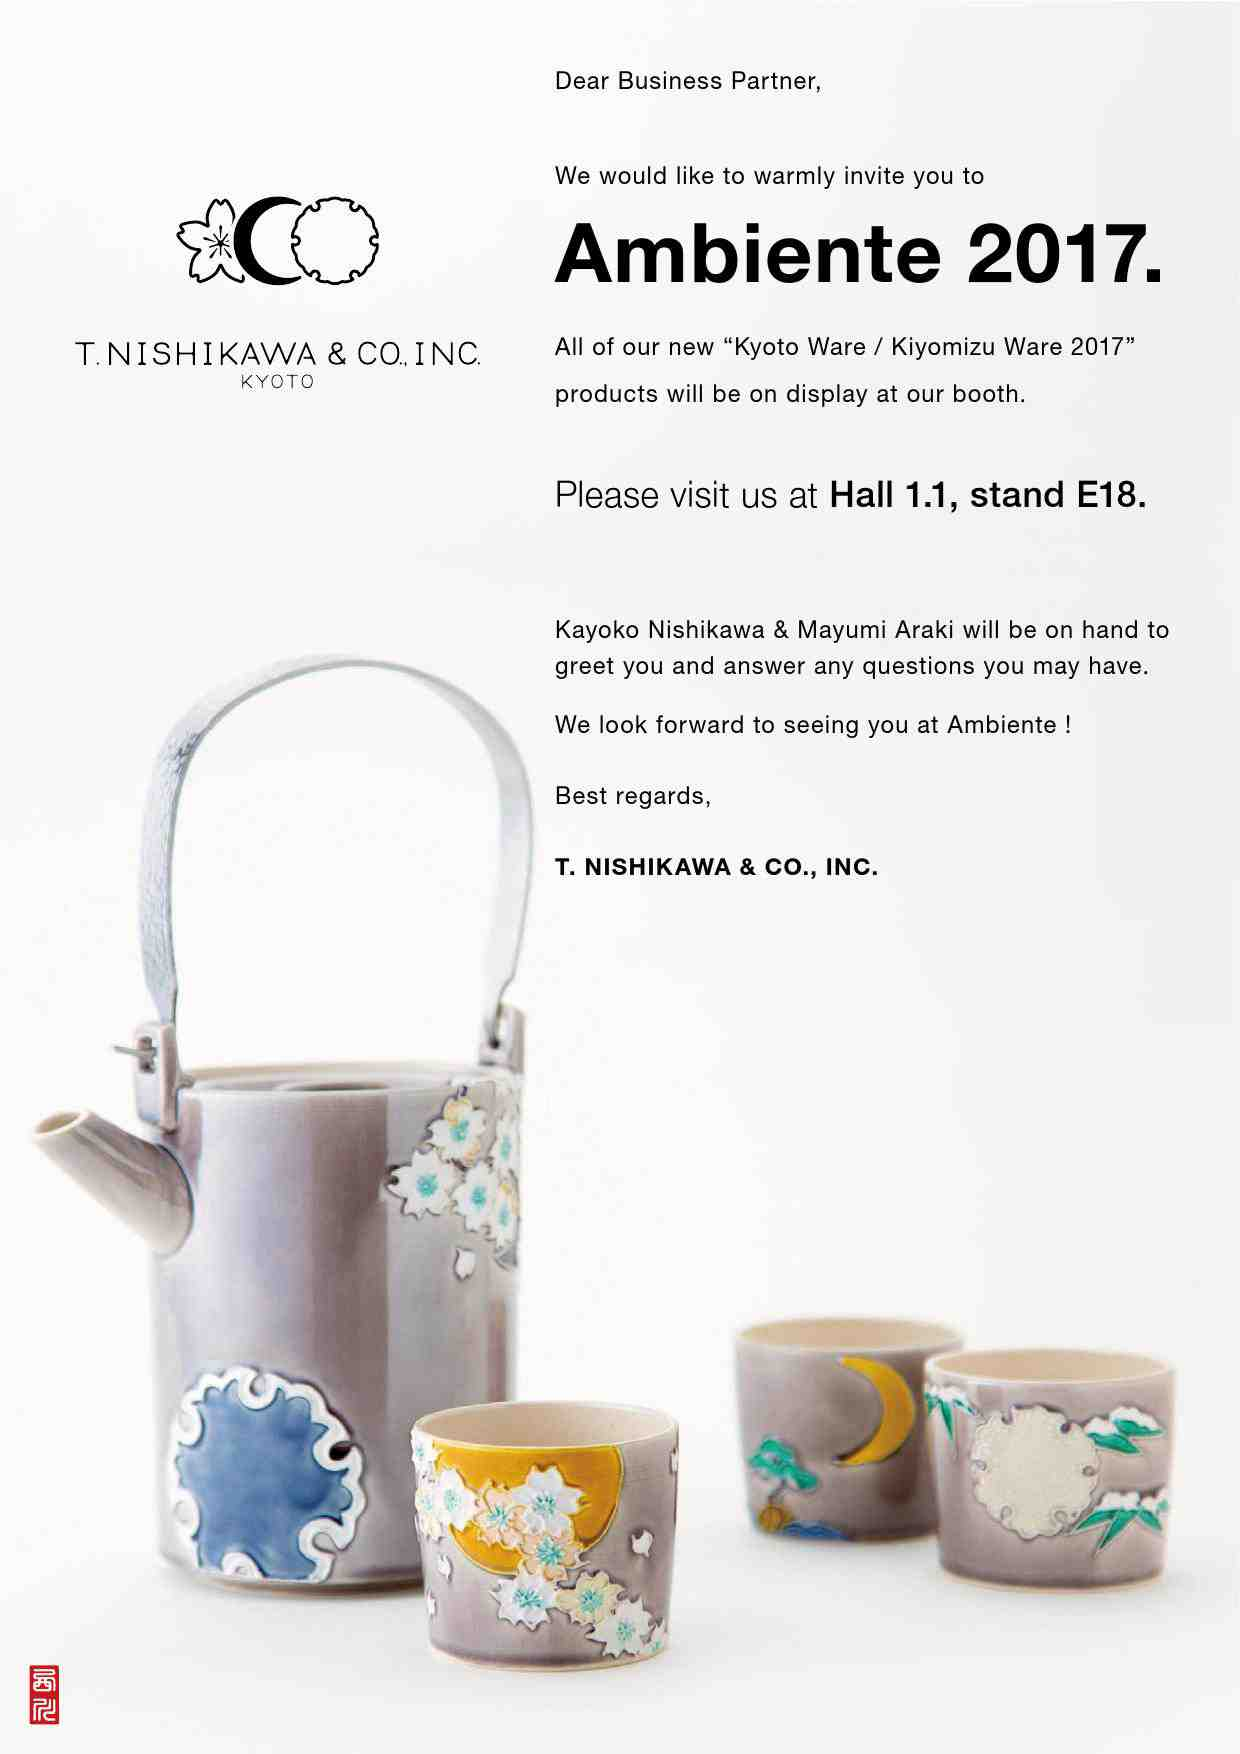 IMG: Ambiente アンビエンテ / 国際消費財見本市に出展します